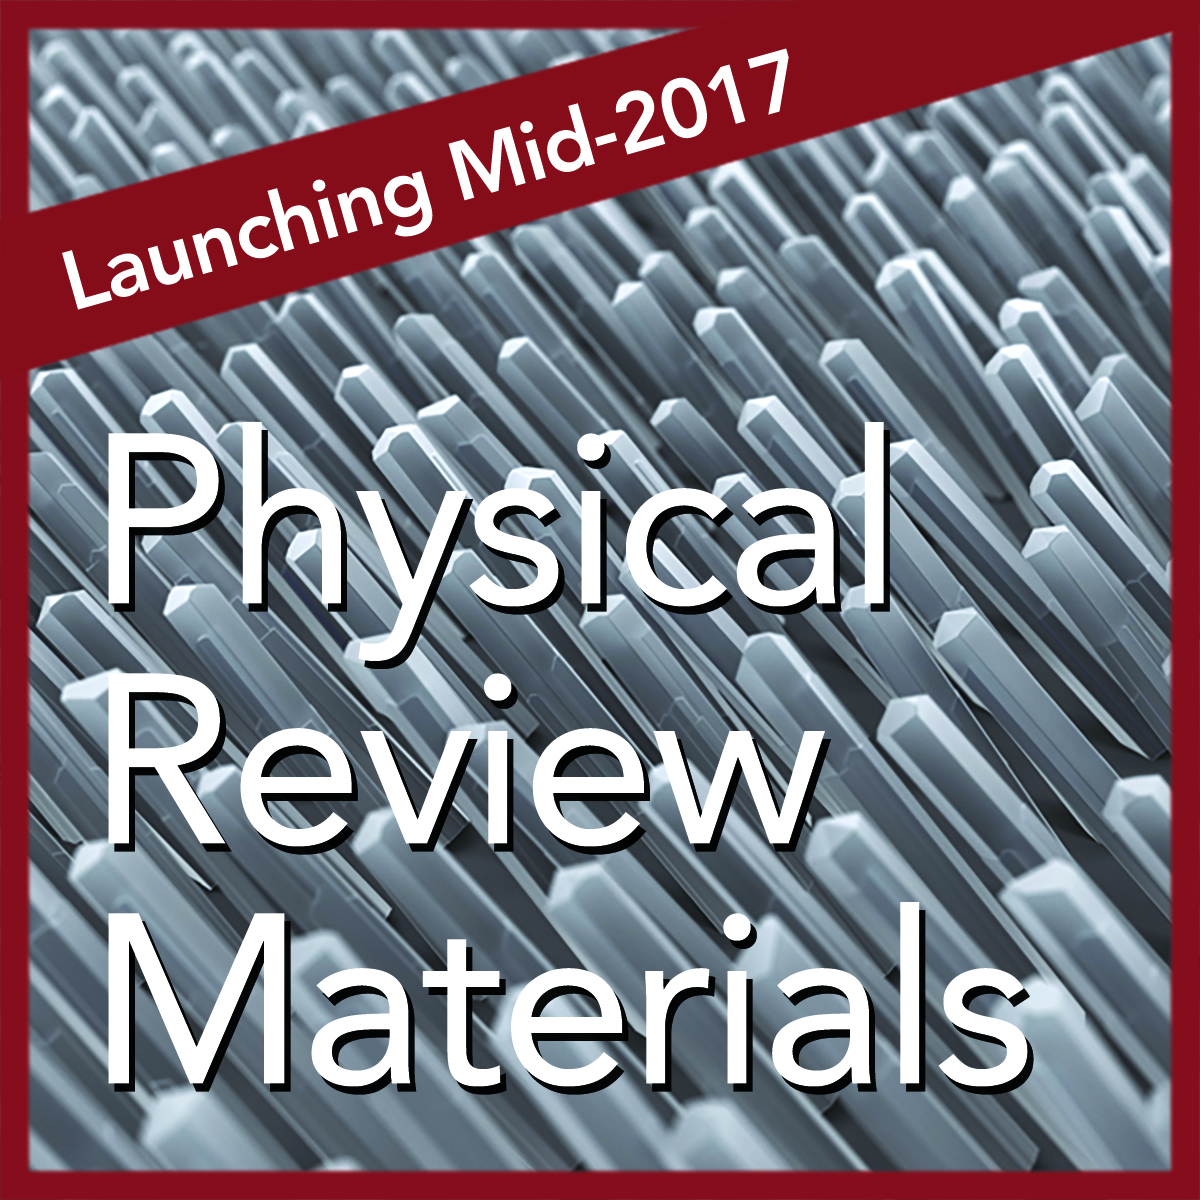 Physical Review Materials